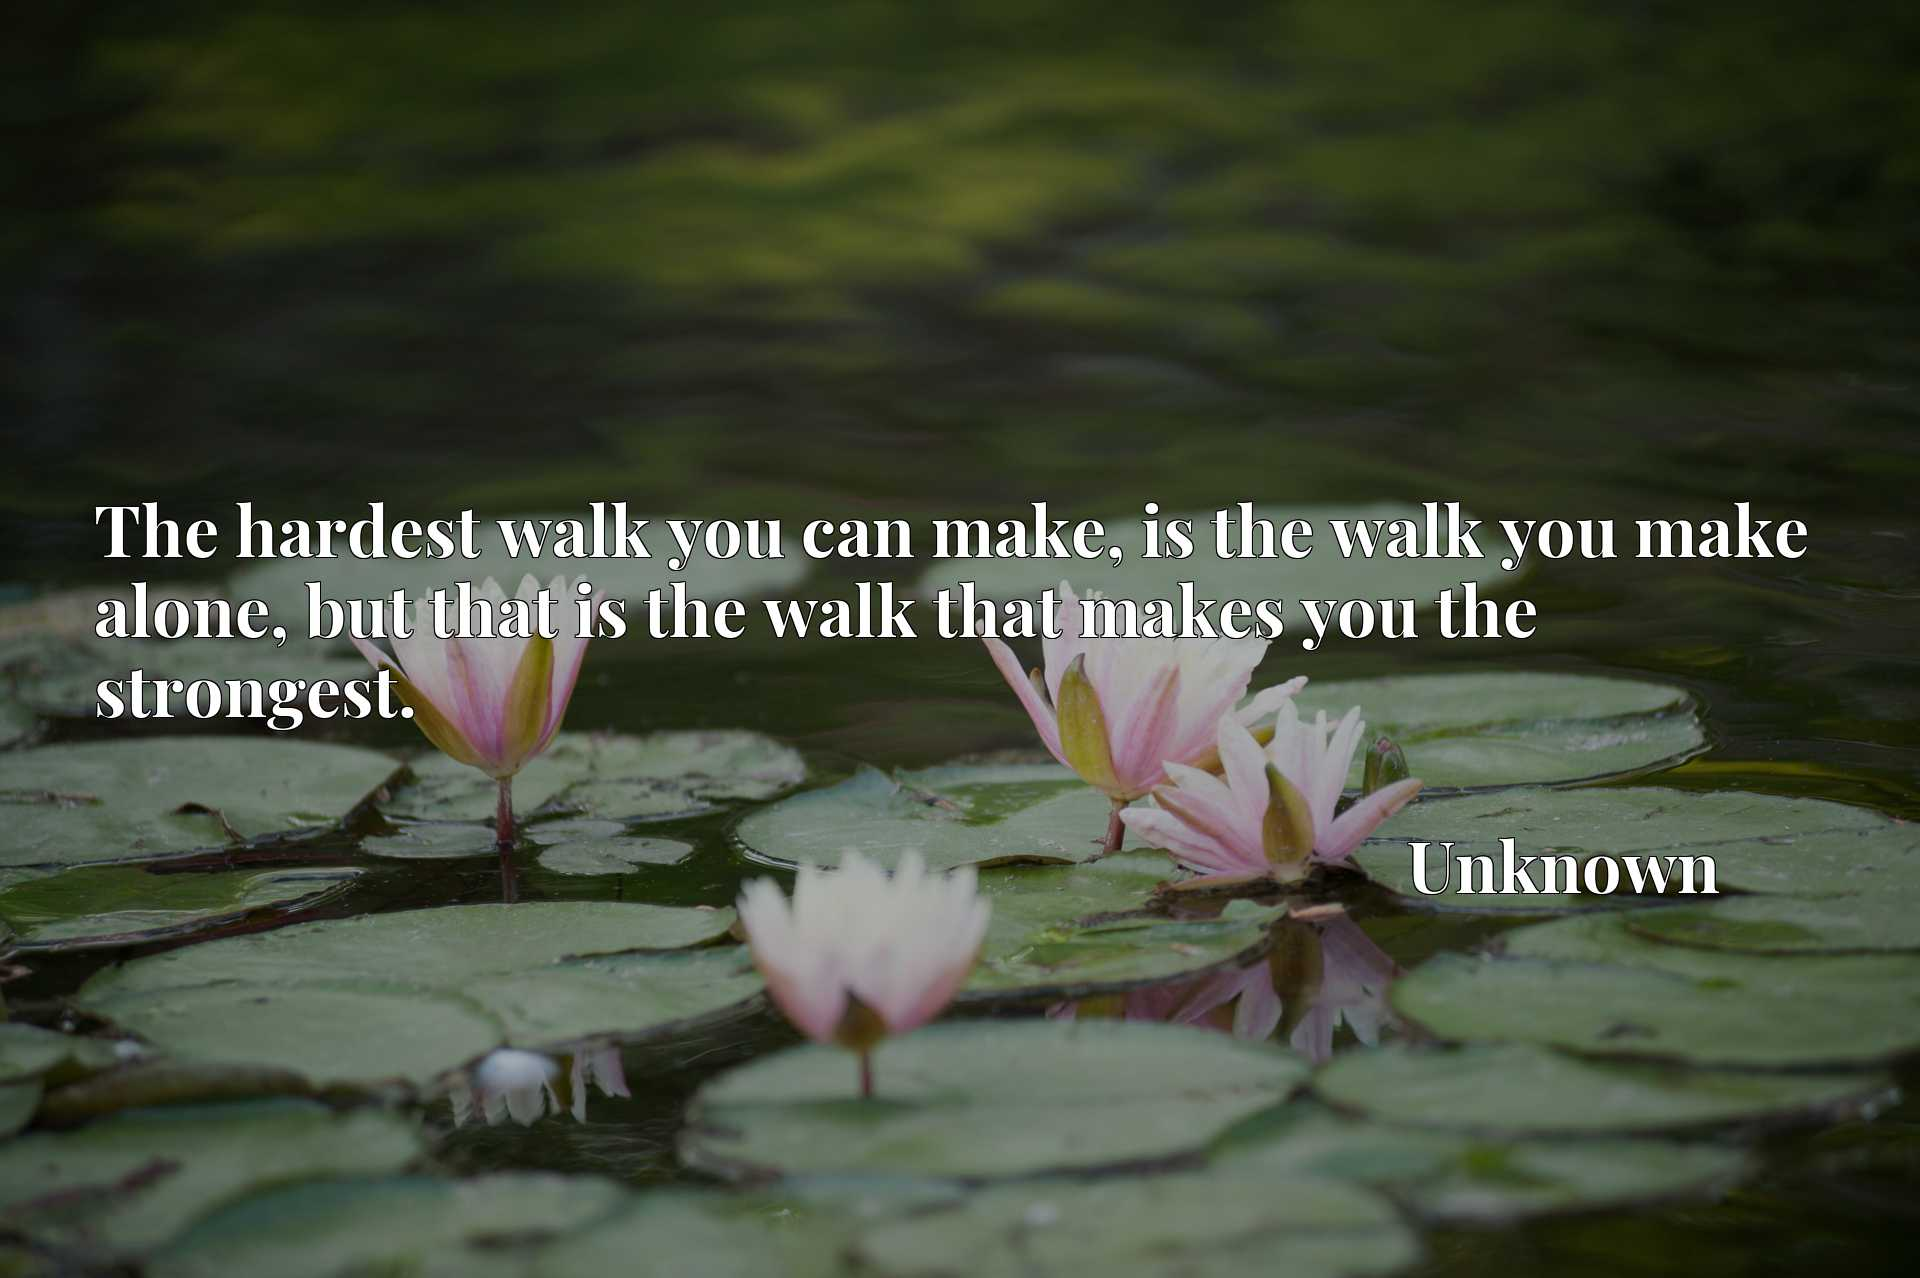 The hardest walk you can make, is the walk you make alone, but that is the walk that makes you the strongest.